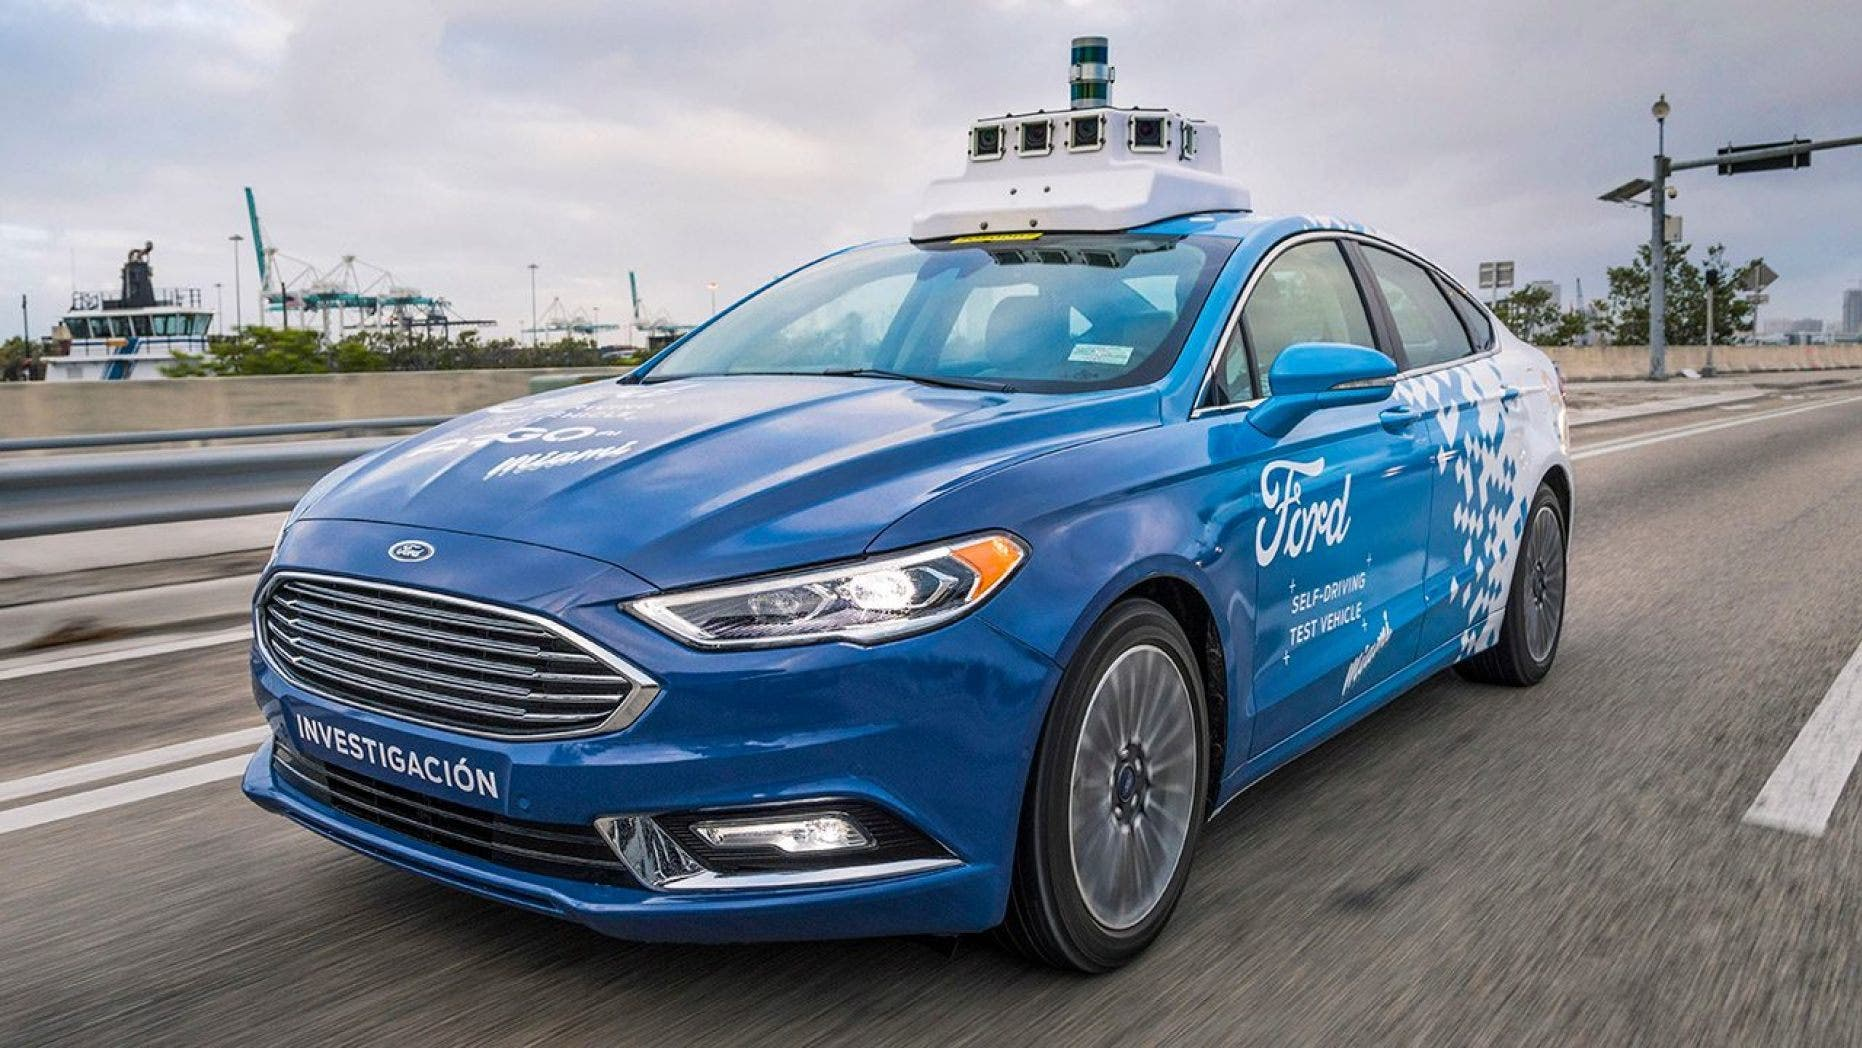 Ford's Argo AI subsidiary has been testing Fusion hybrids equipped with self-driving technology.